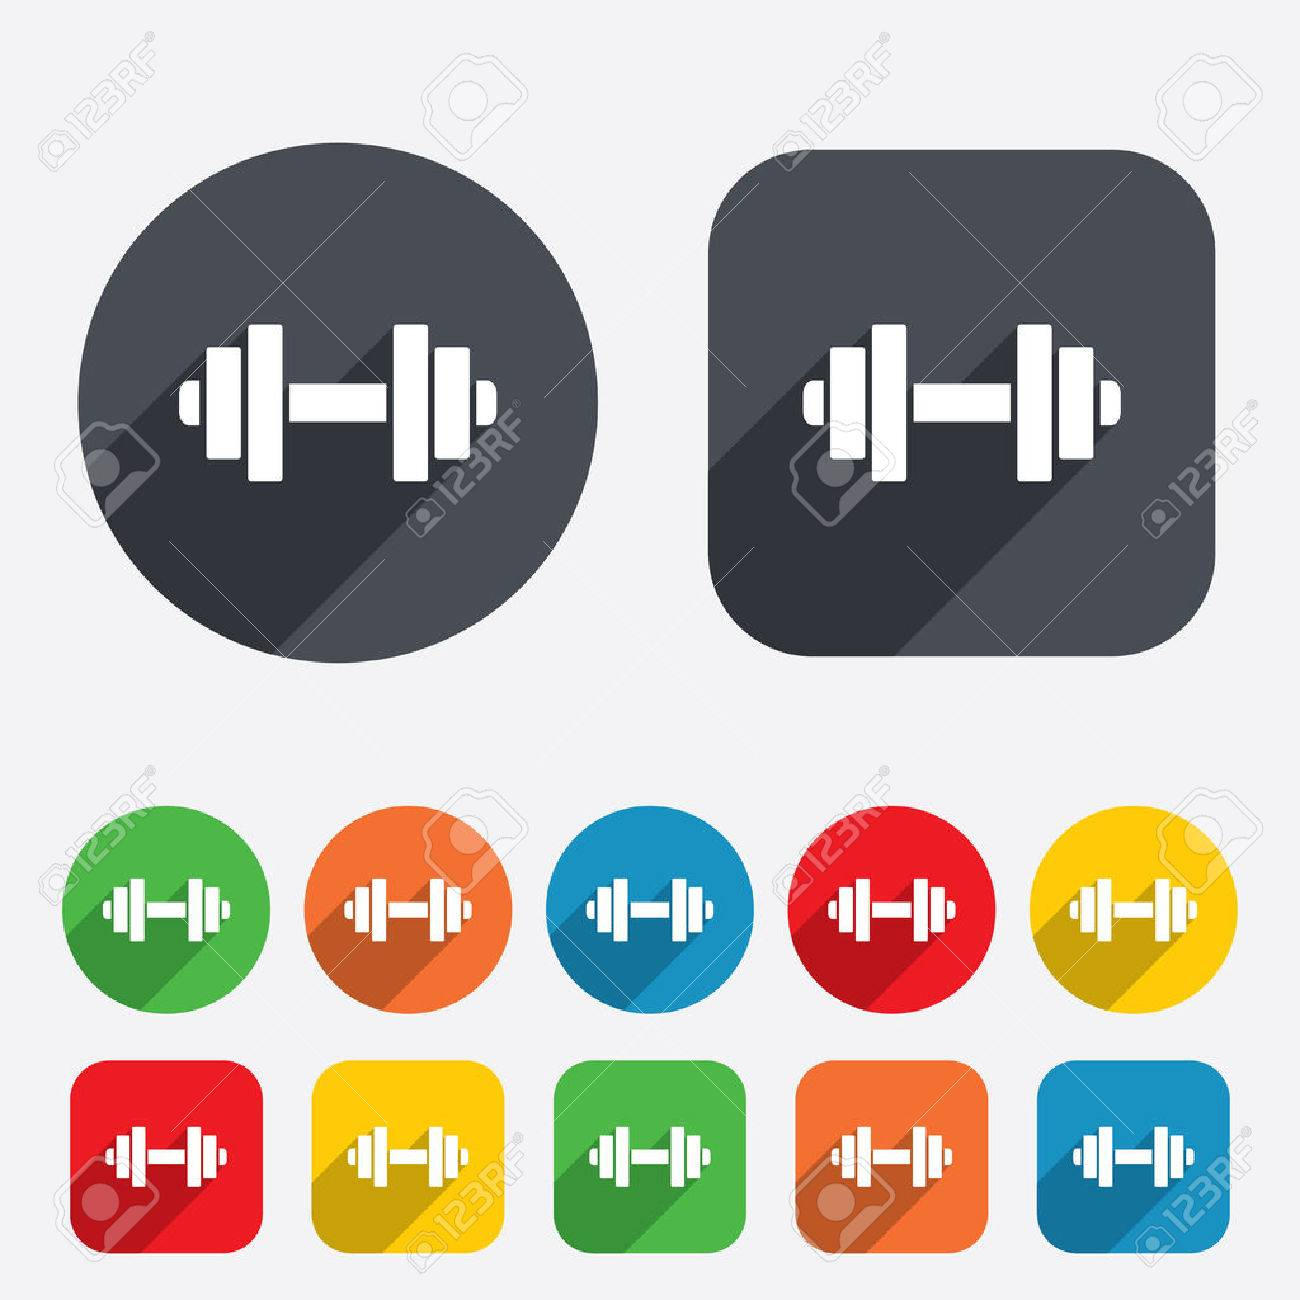 Dumbbell Icon Vector Dumbbell sign icon